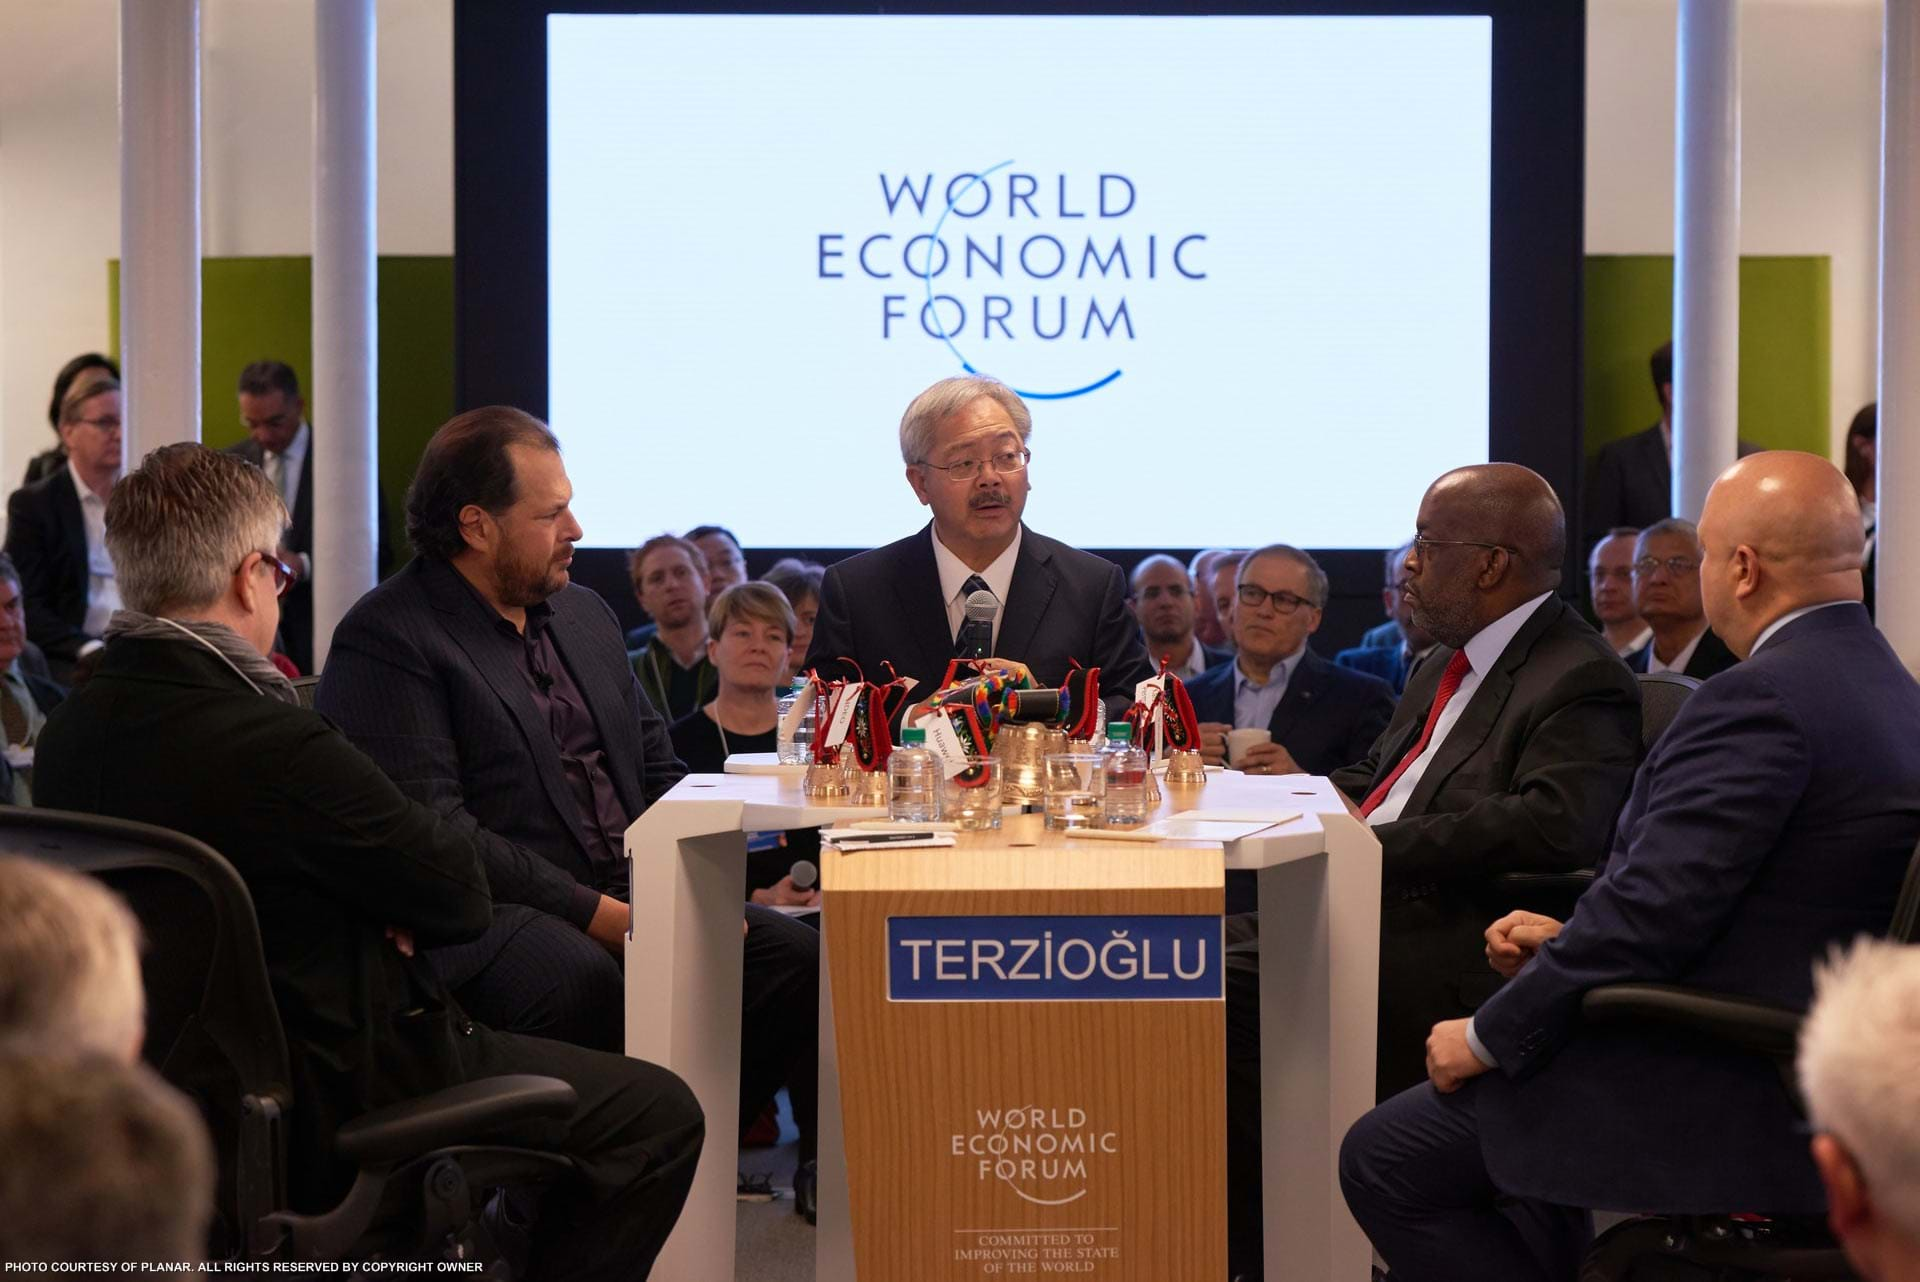 World Economic Forum Image